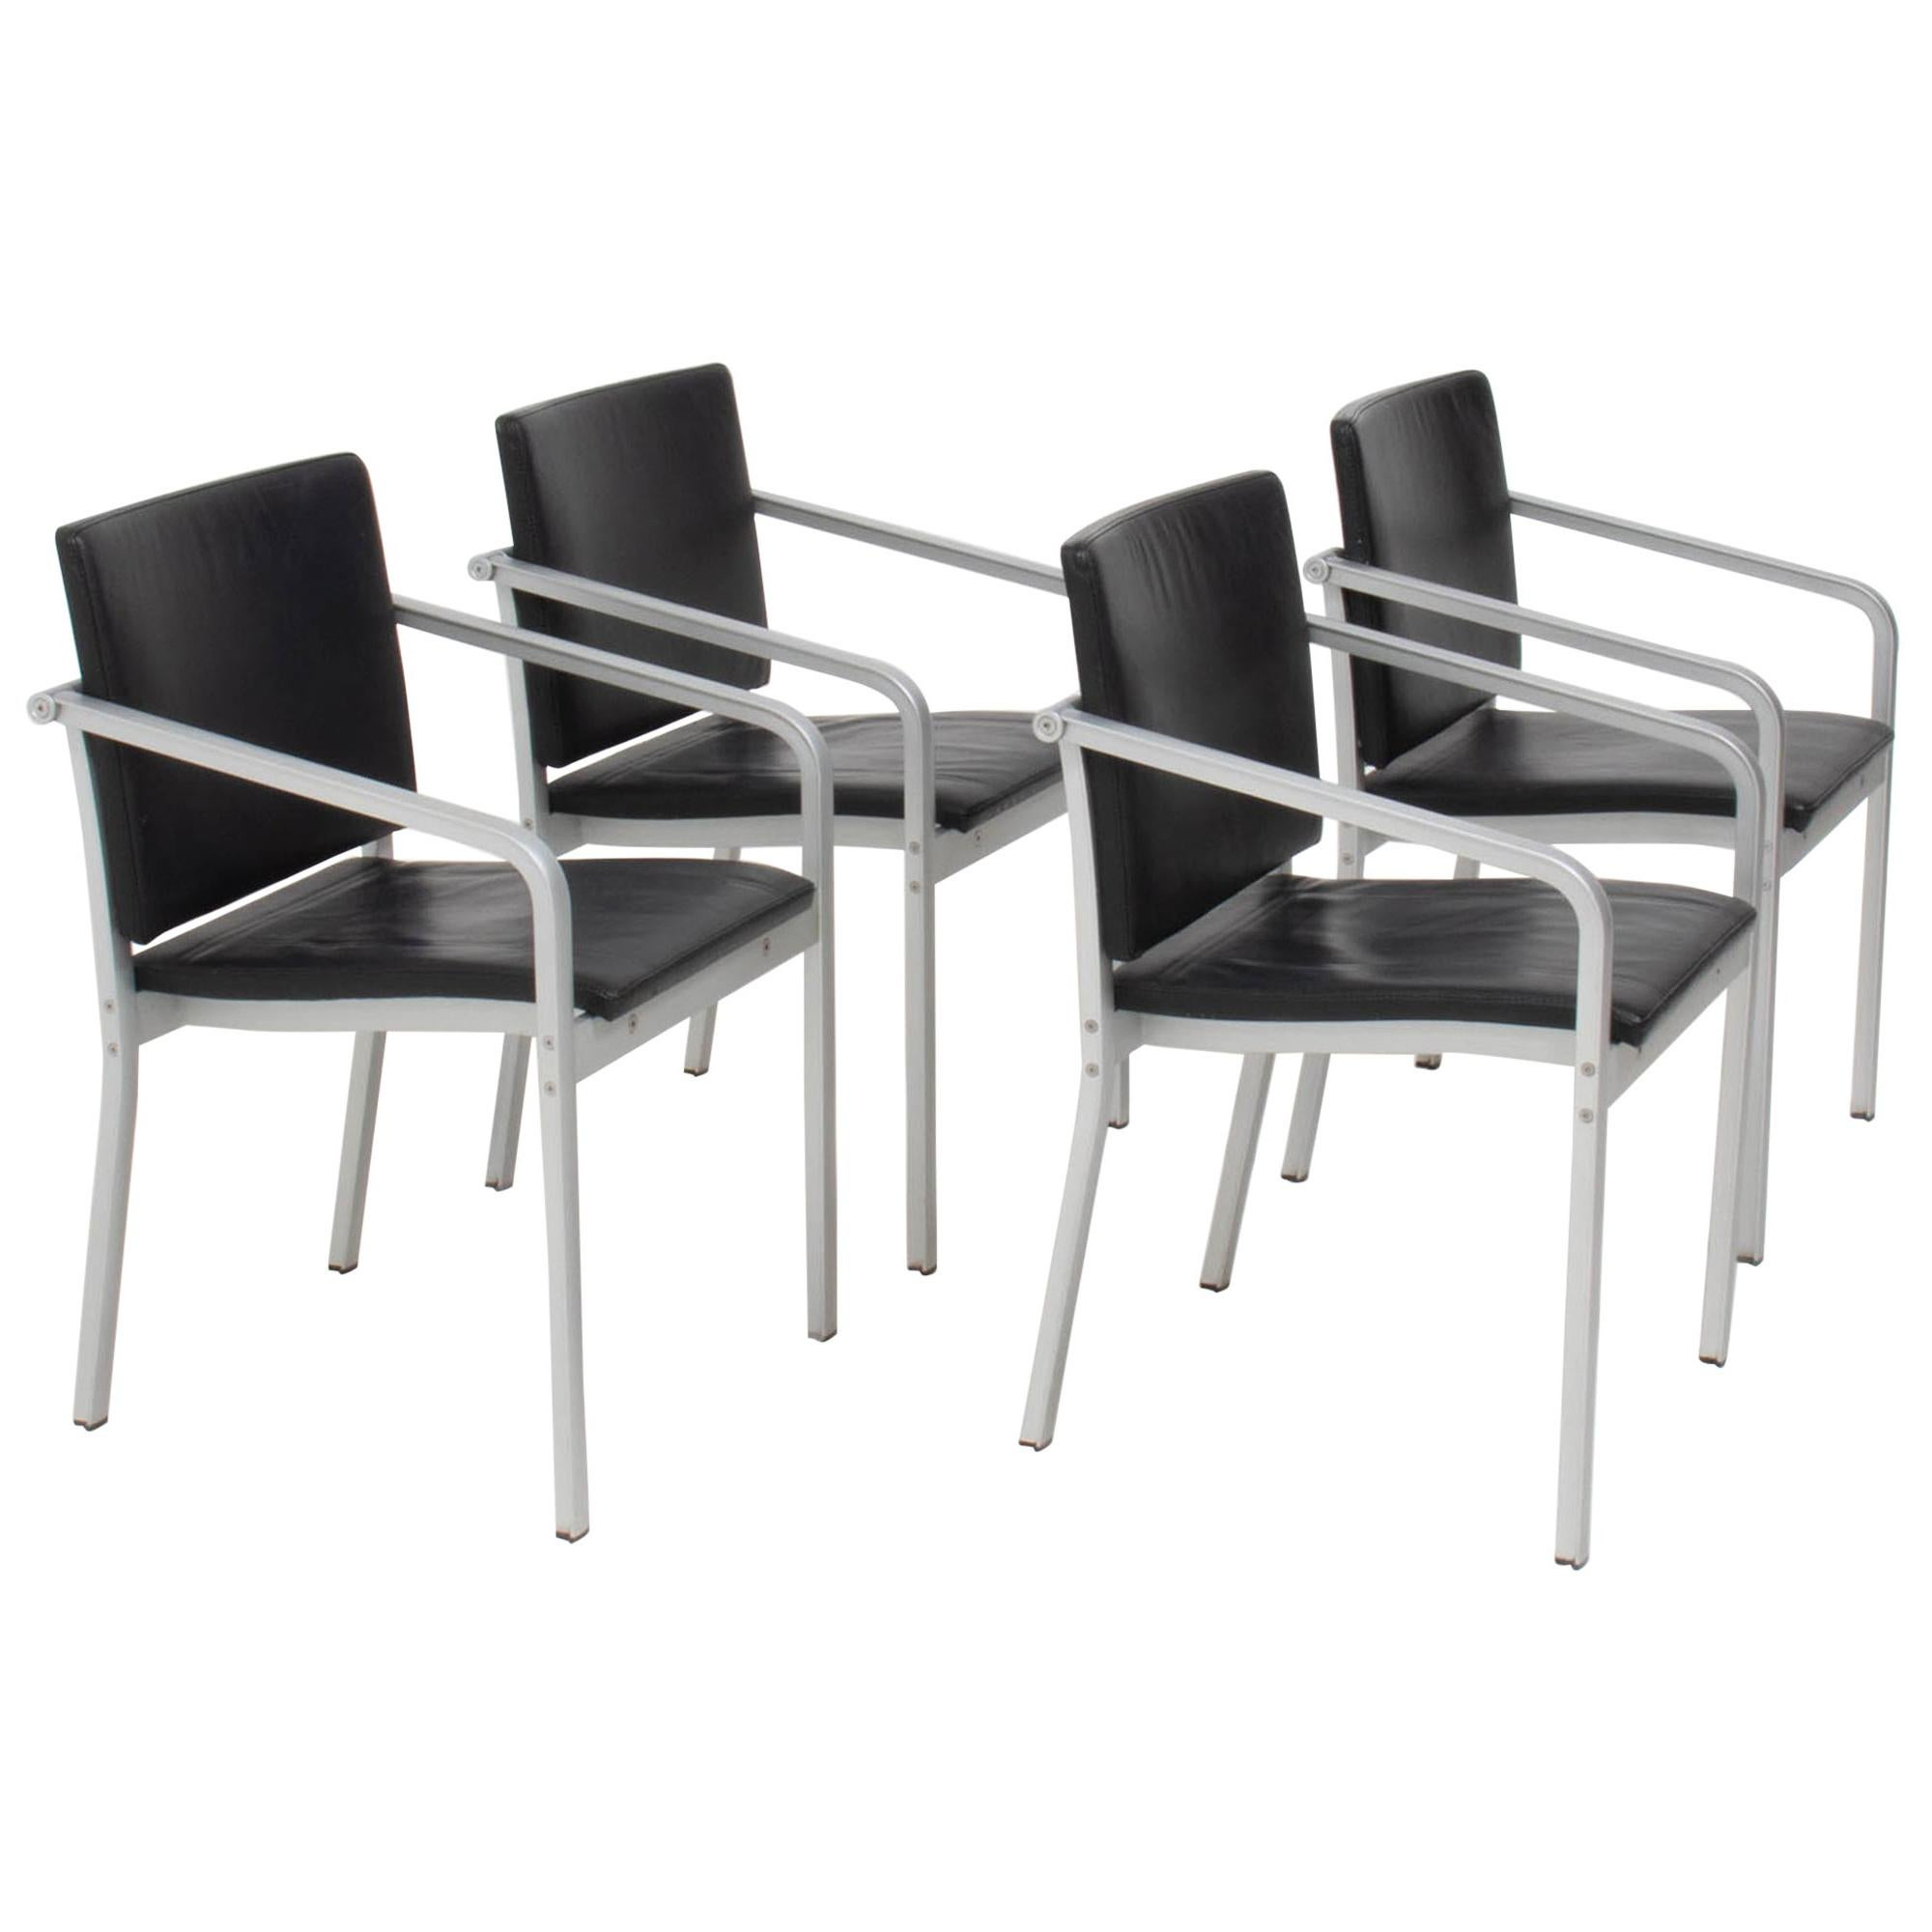 Thonet by Norman Foster A901 PF Black Leather Dining Chairs, Set of 4